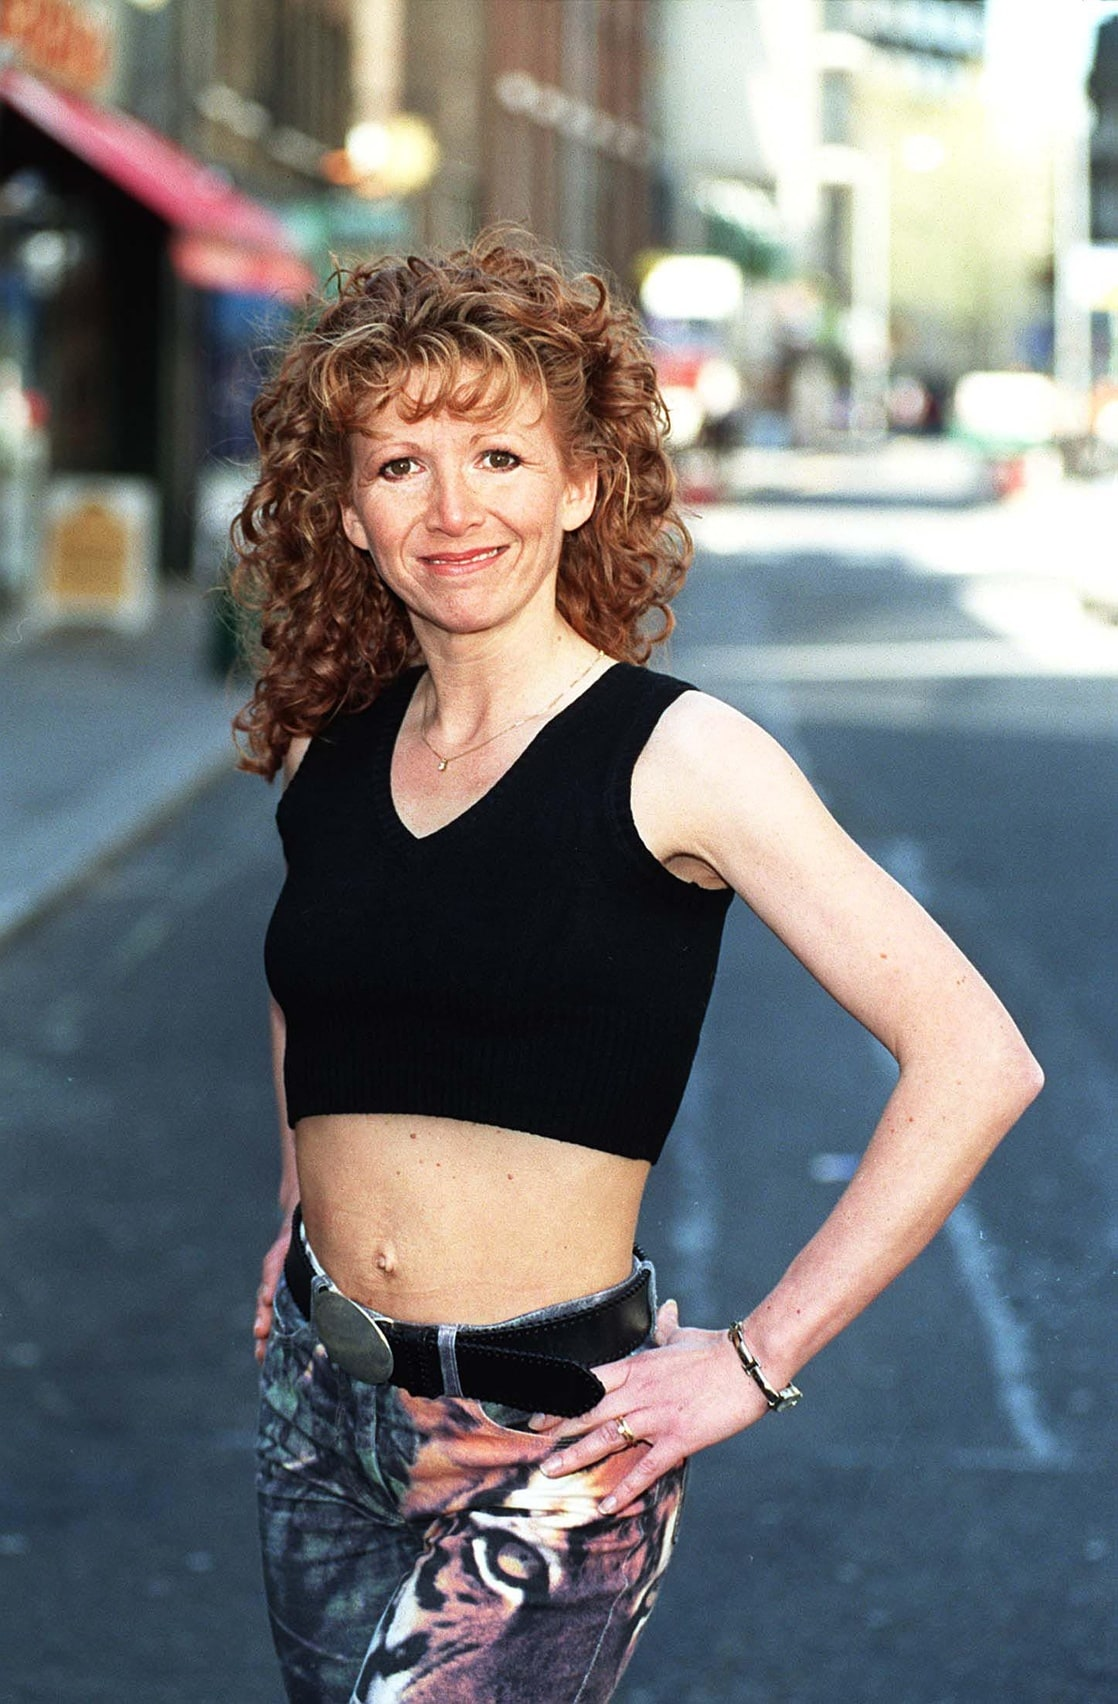 Forum on this topic: Katie A. Keane, bonnie-langford/